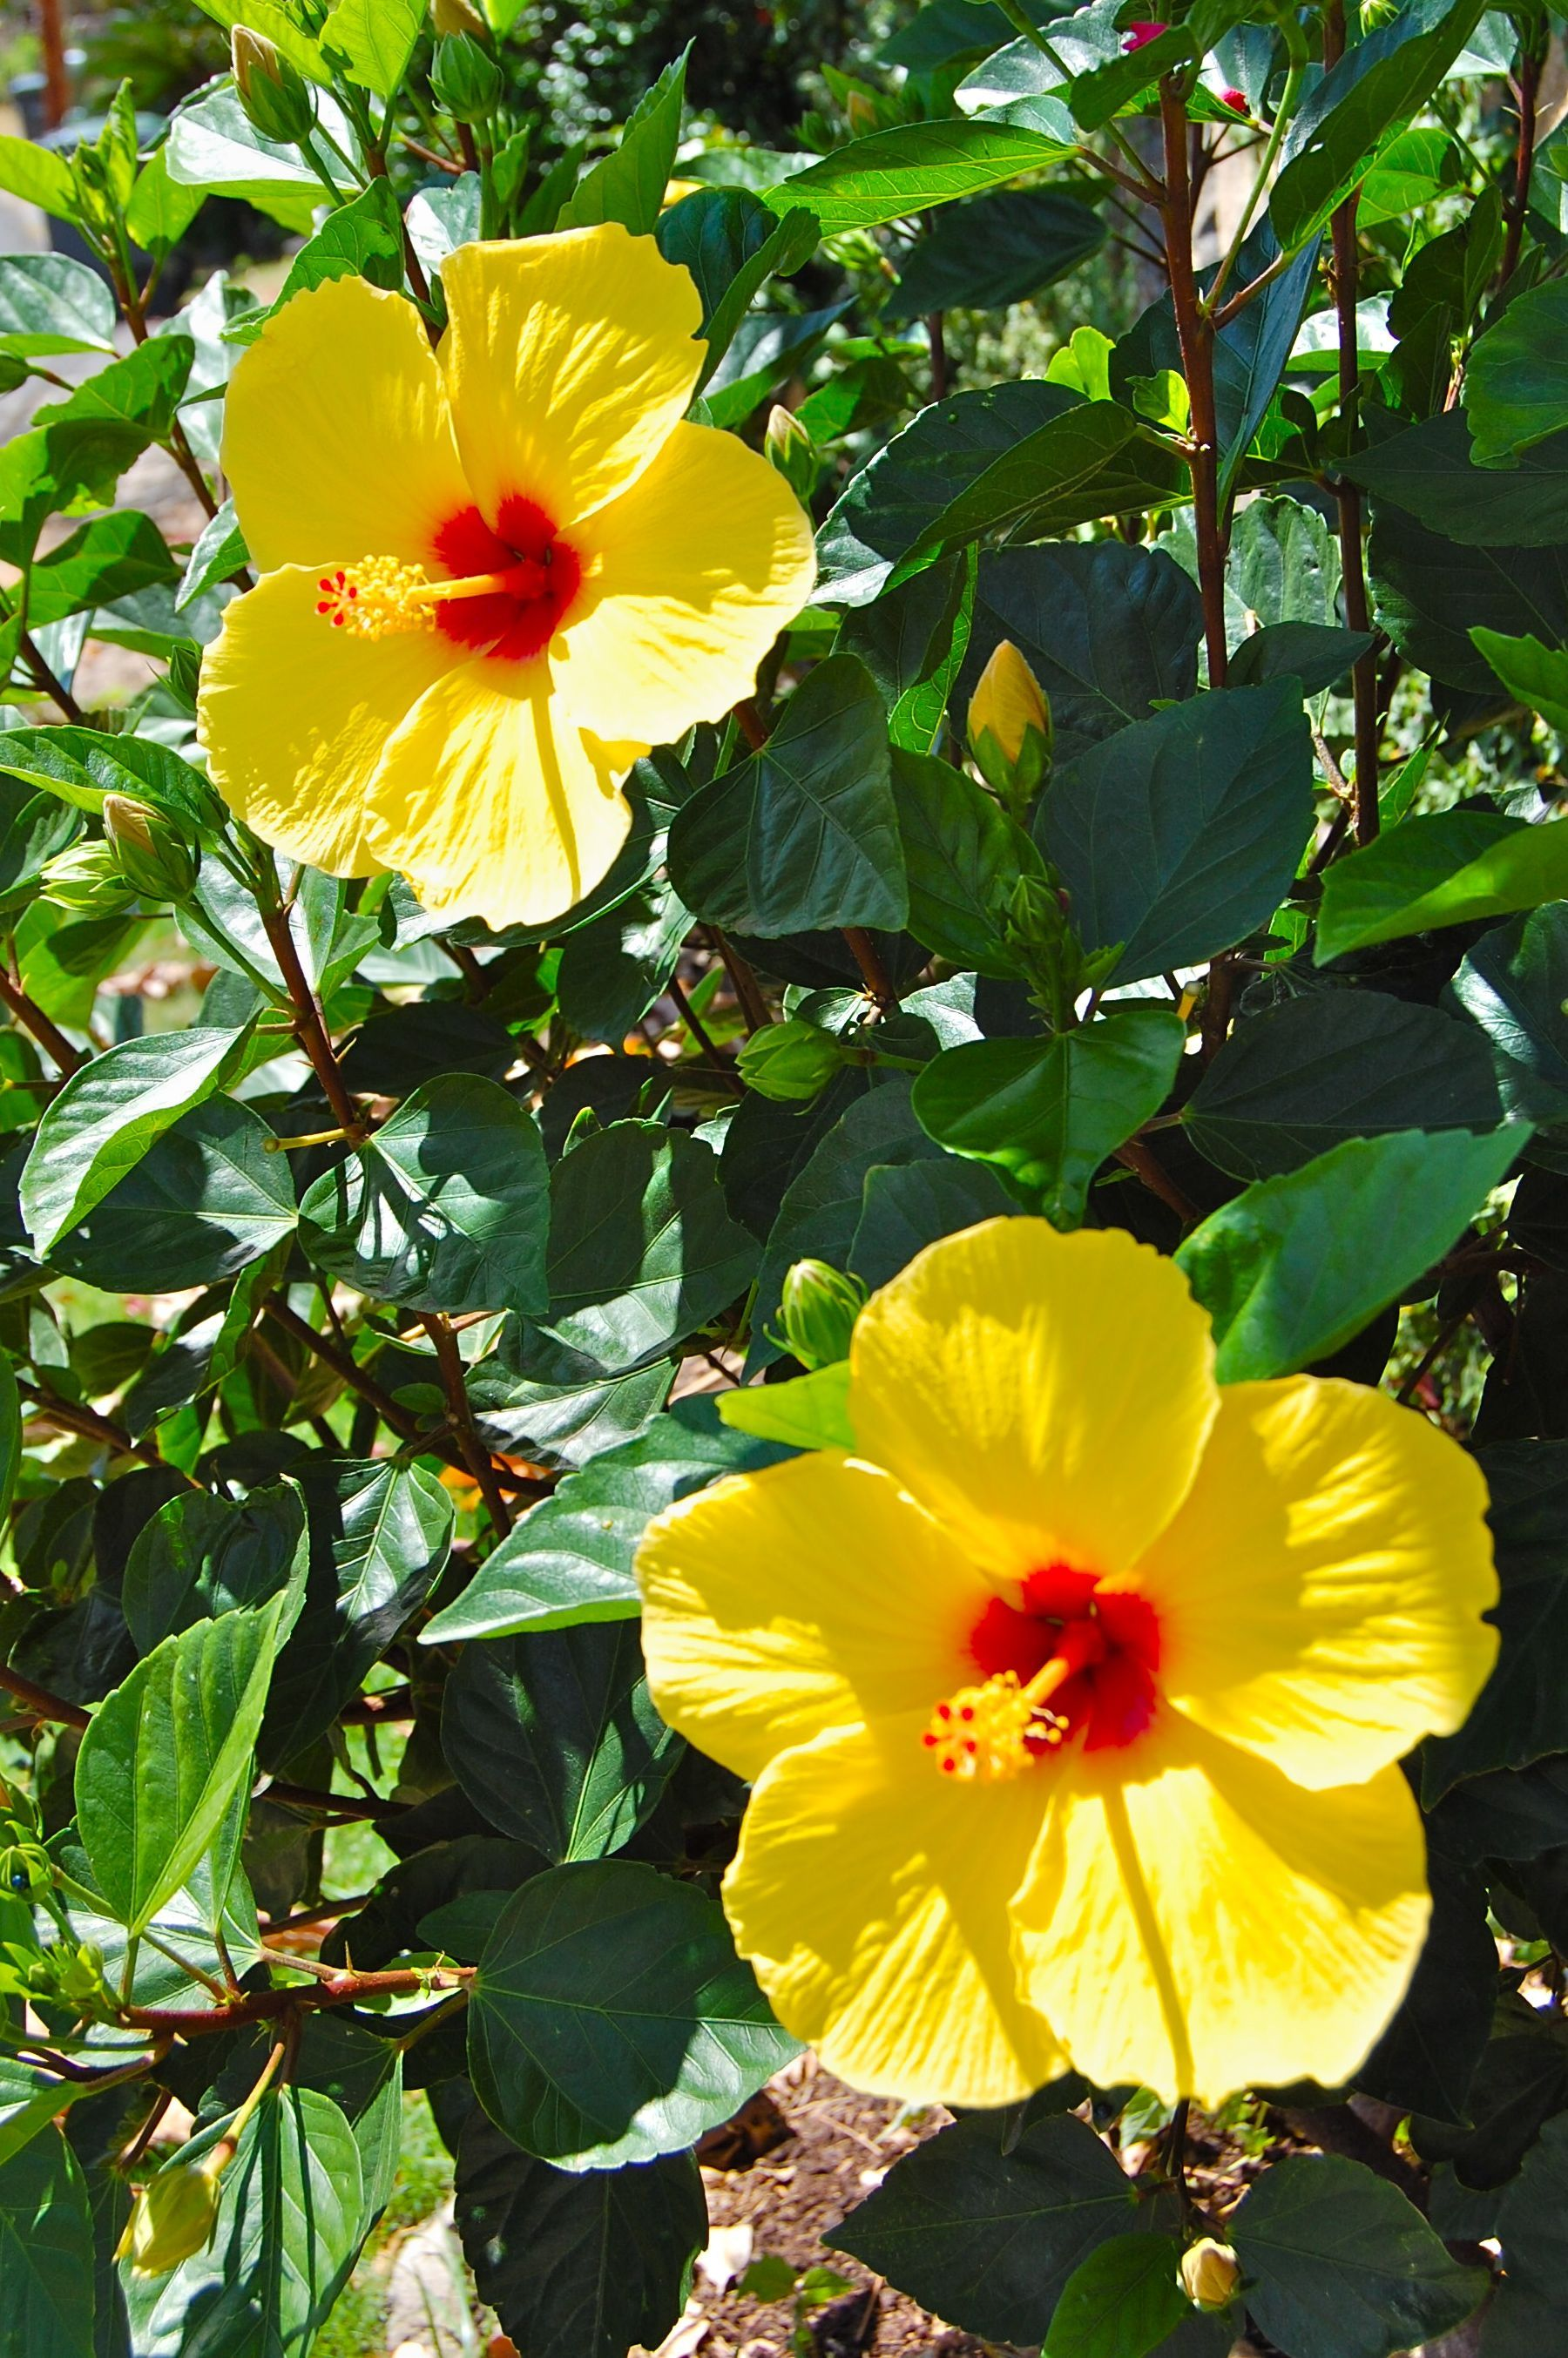 Mao hau hele yellow hibiscus endemic and endangered is the yellow hibiscus endemic and endangered is the state flower of hawaii i think this is the more common chinese hibiscus based on the leaf shape izmirmasajfo